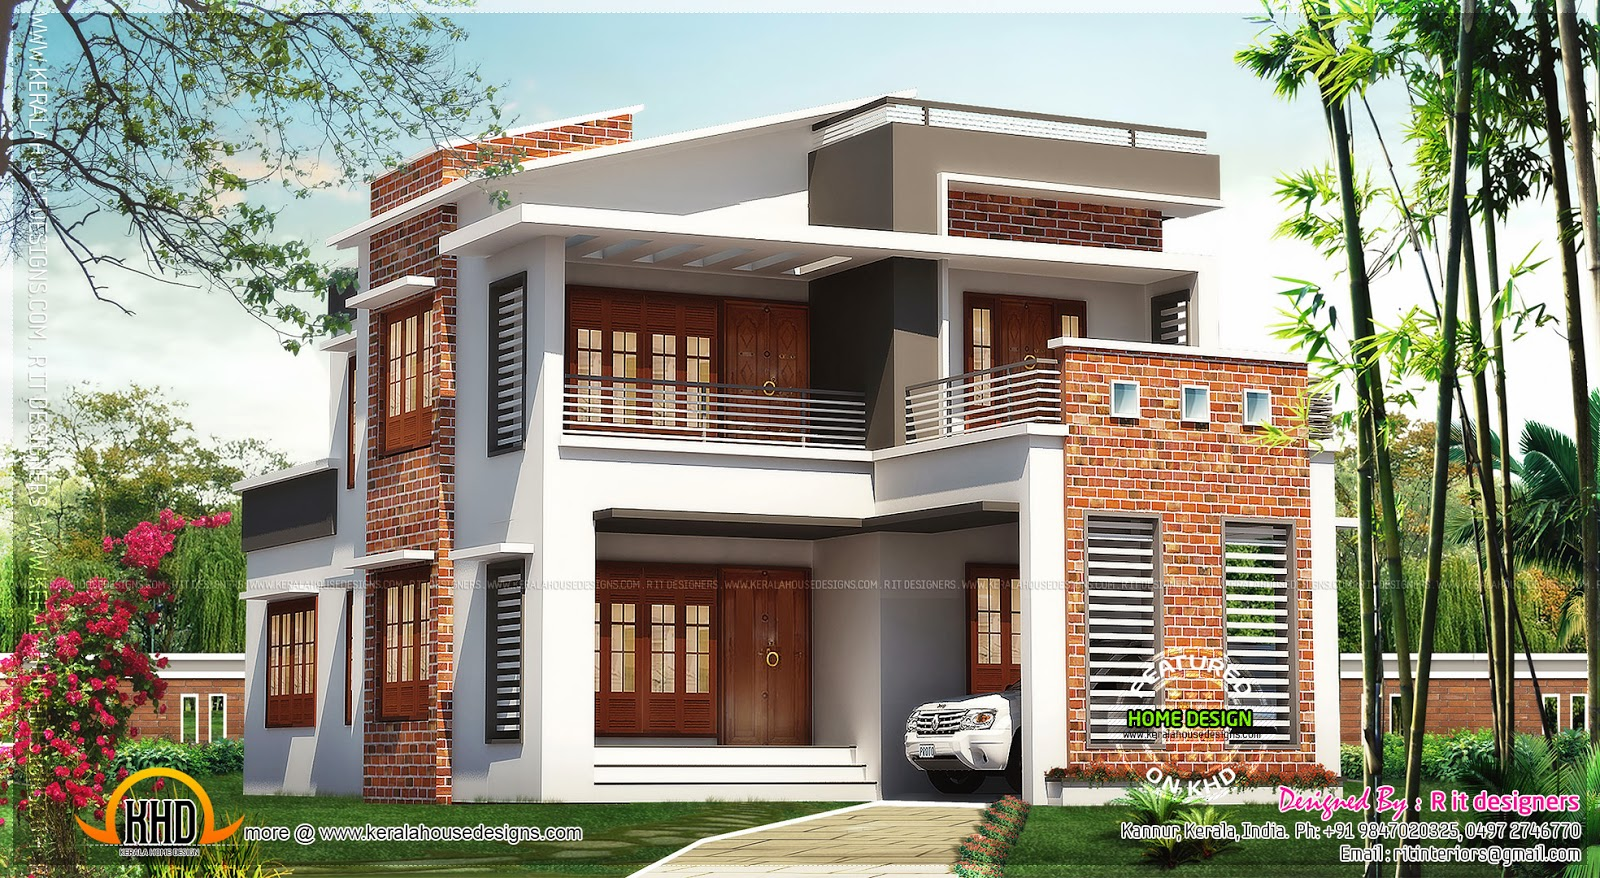 Brick mix house exterior design indian house plans for Exterior house designs indian style